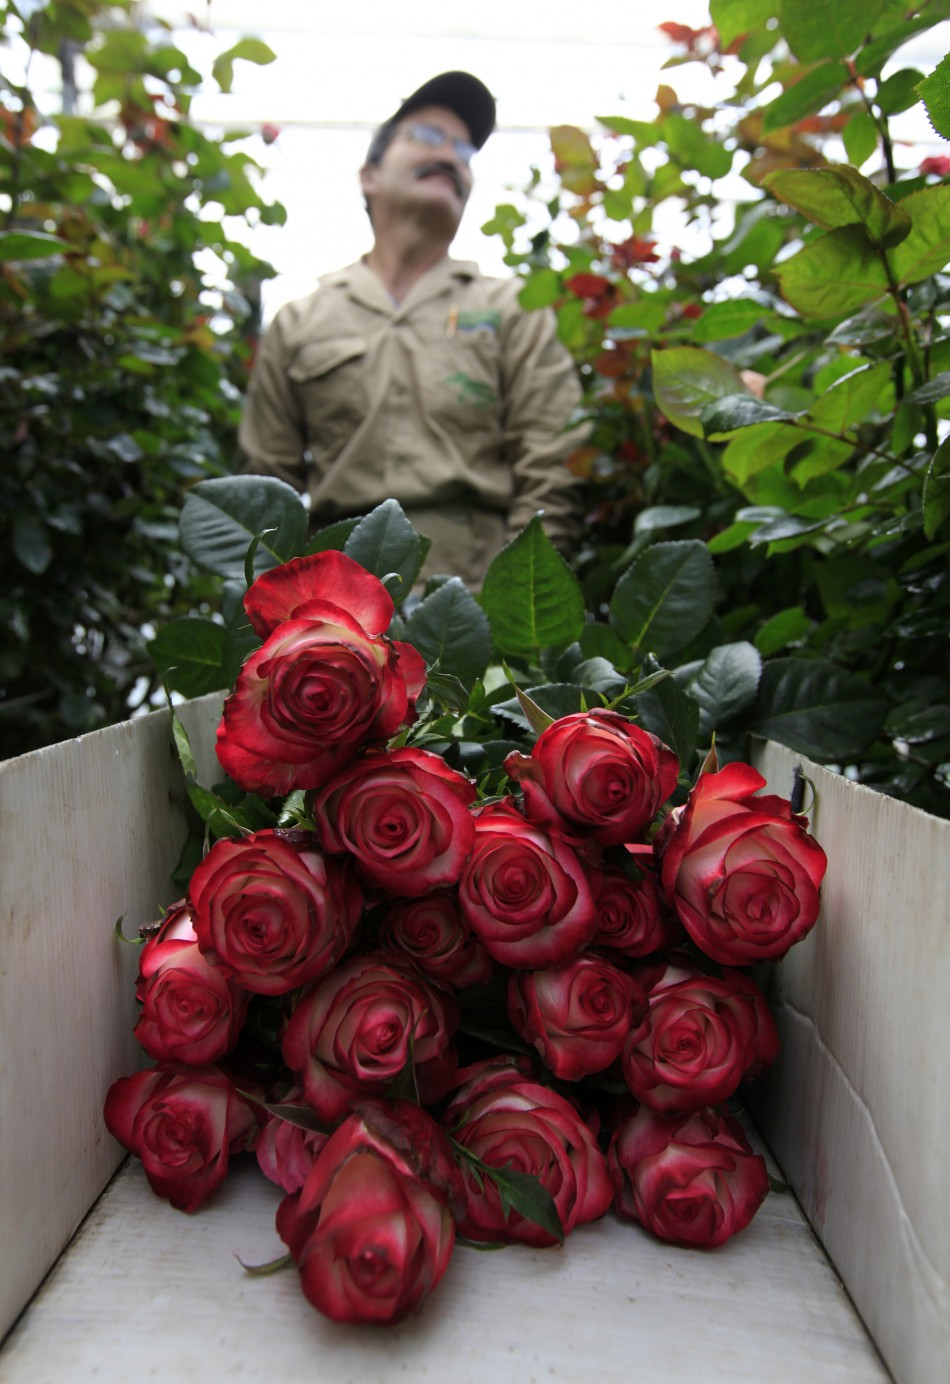 Colombian Flower Growers Prepare for Valentine's Day